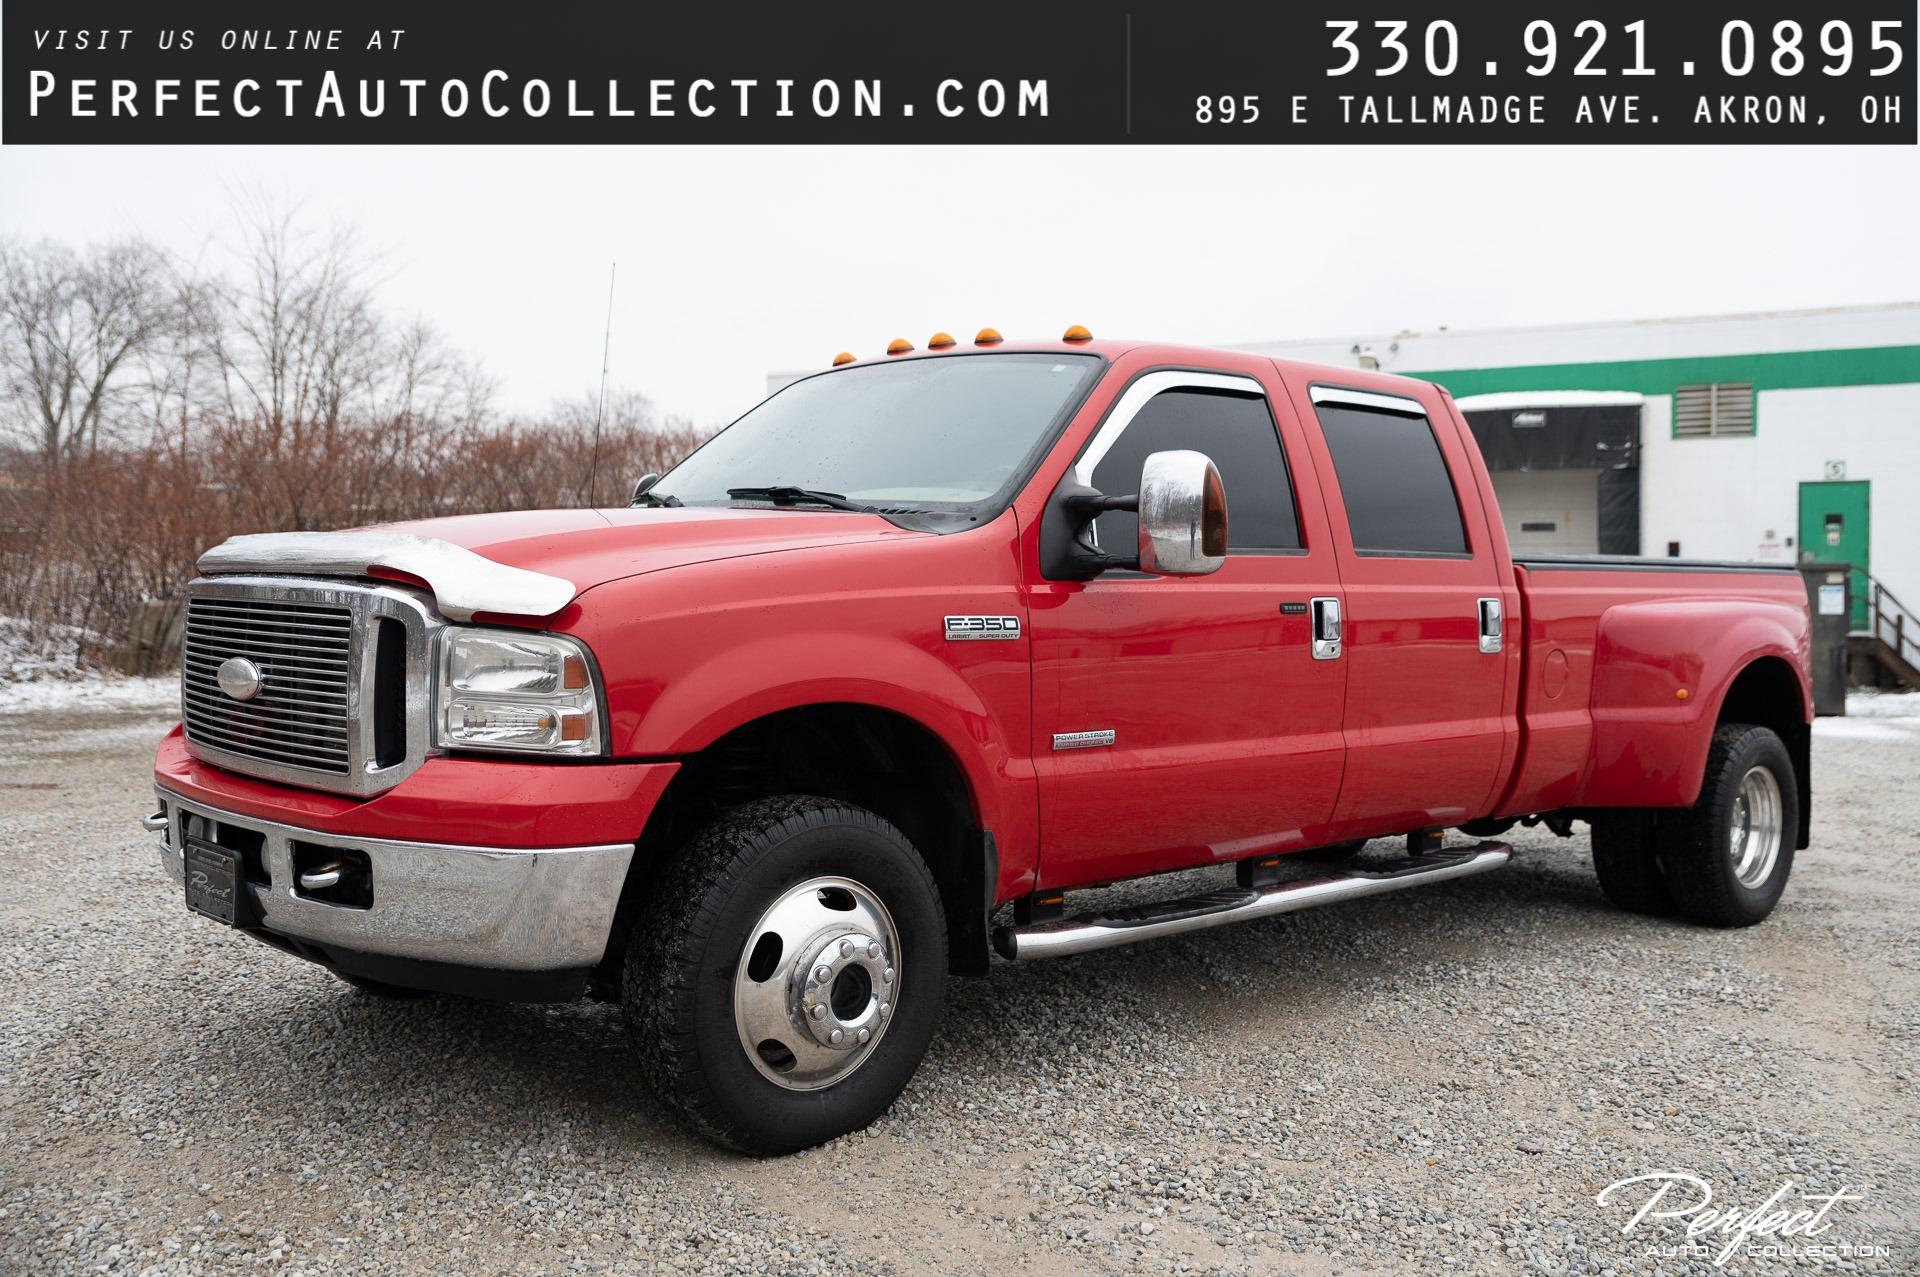 Used 2006 Ford F-350 Super Duty Lariat for sale $18,495 at Perfect Auto Collection in Akron OH 44310 1